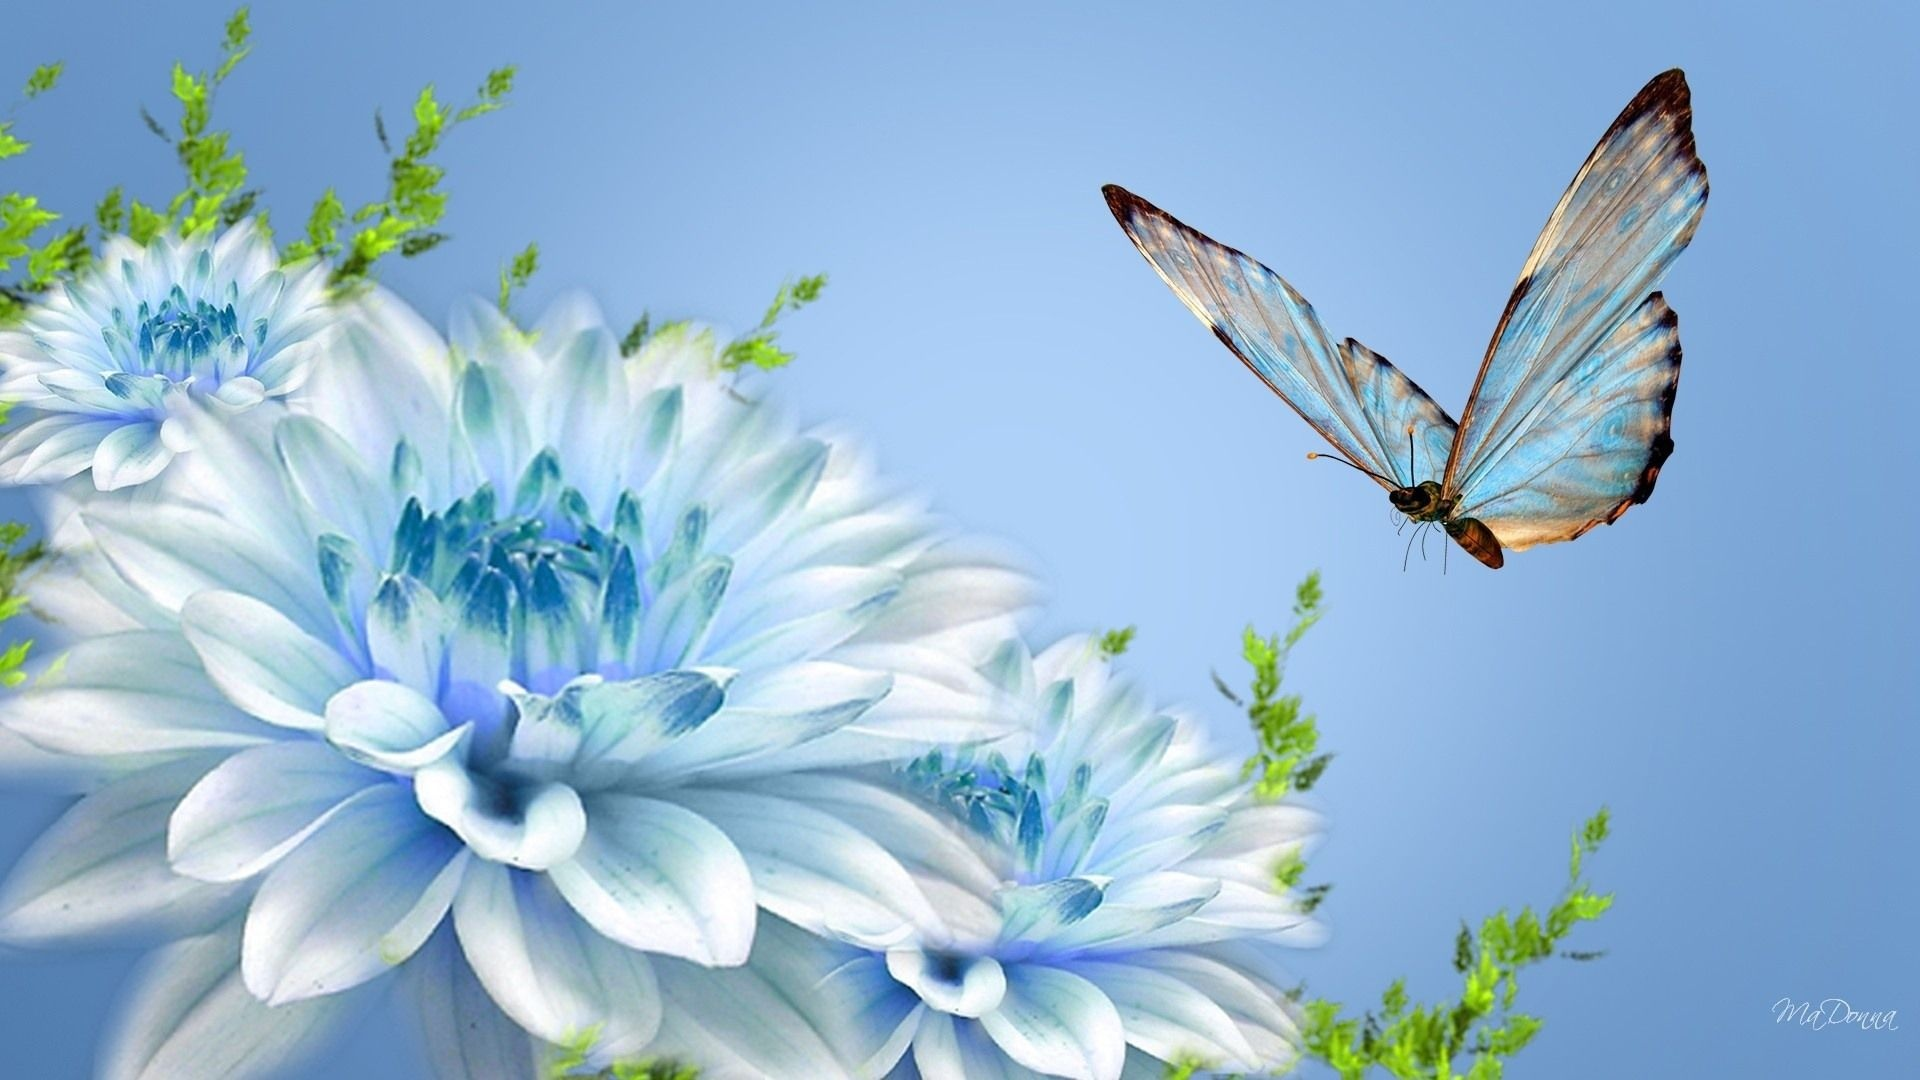 Stunning Blue Flowers Wallpaper